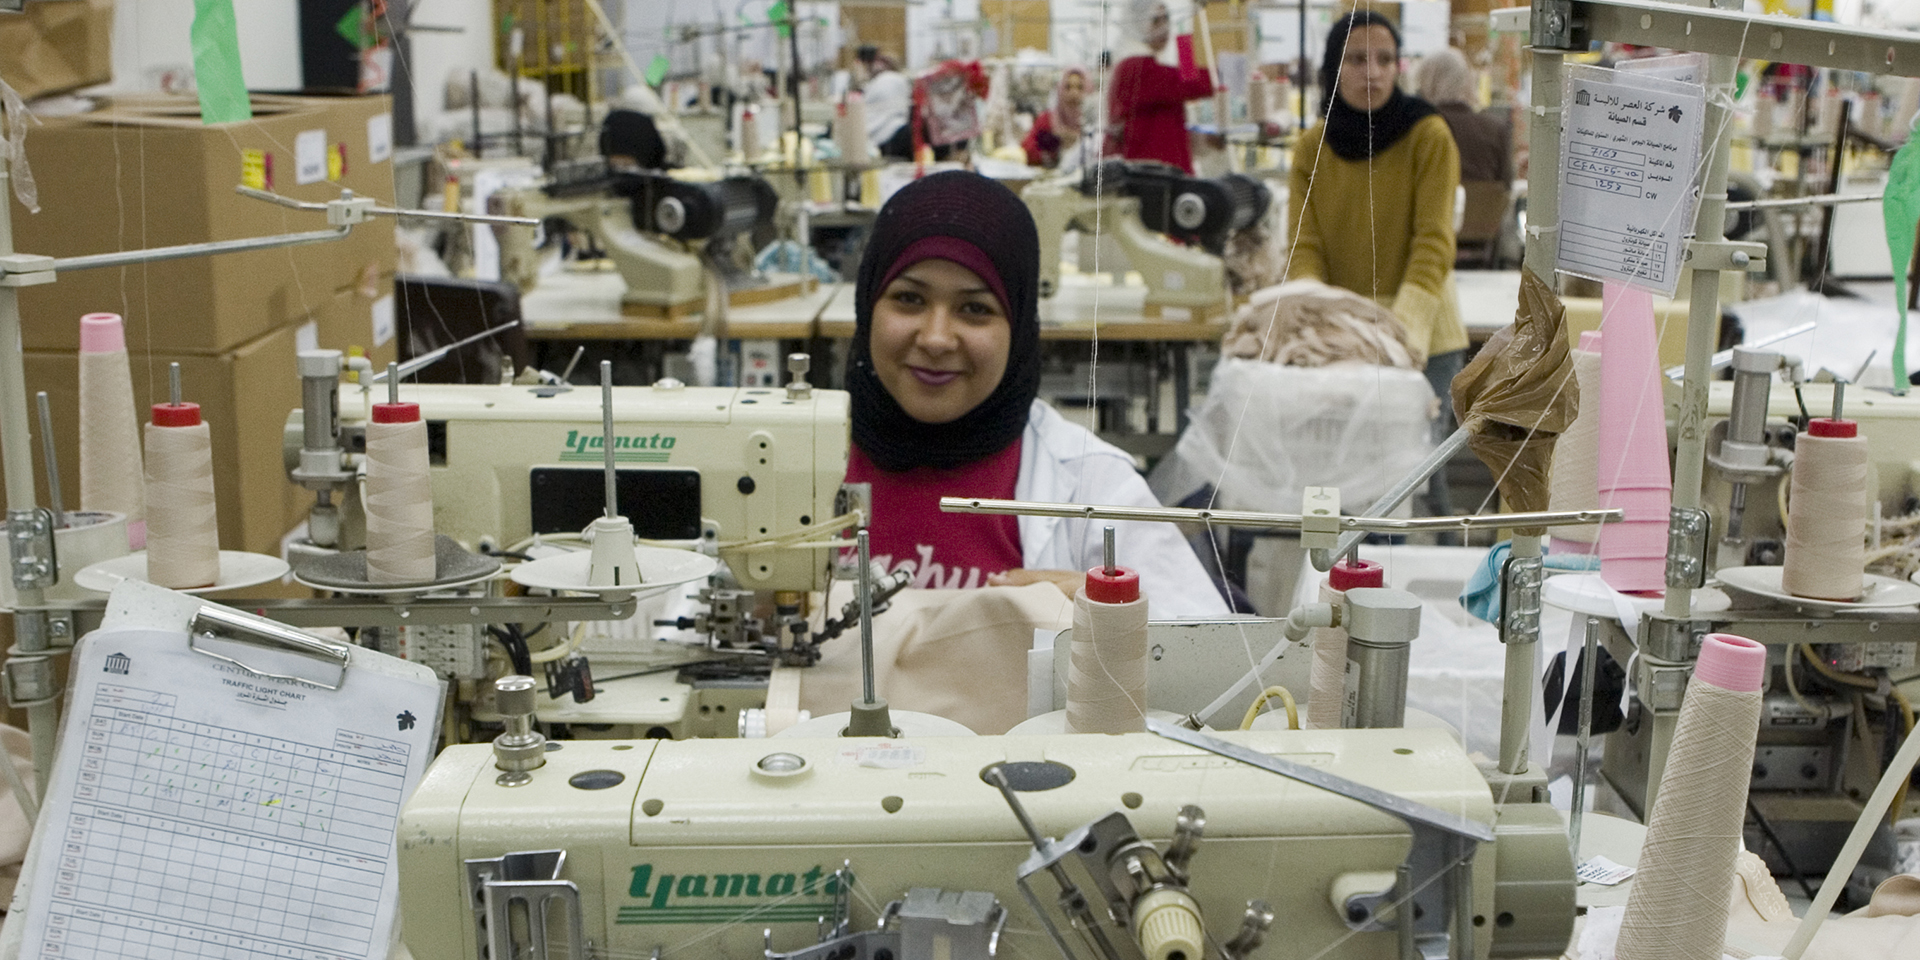 A woman smiles from behind a sewing machine at Century Wear Factory in Irbid, Jordan